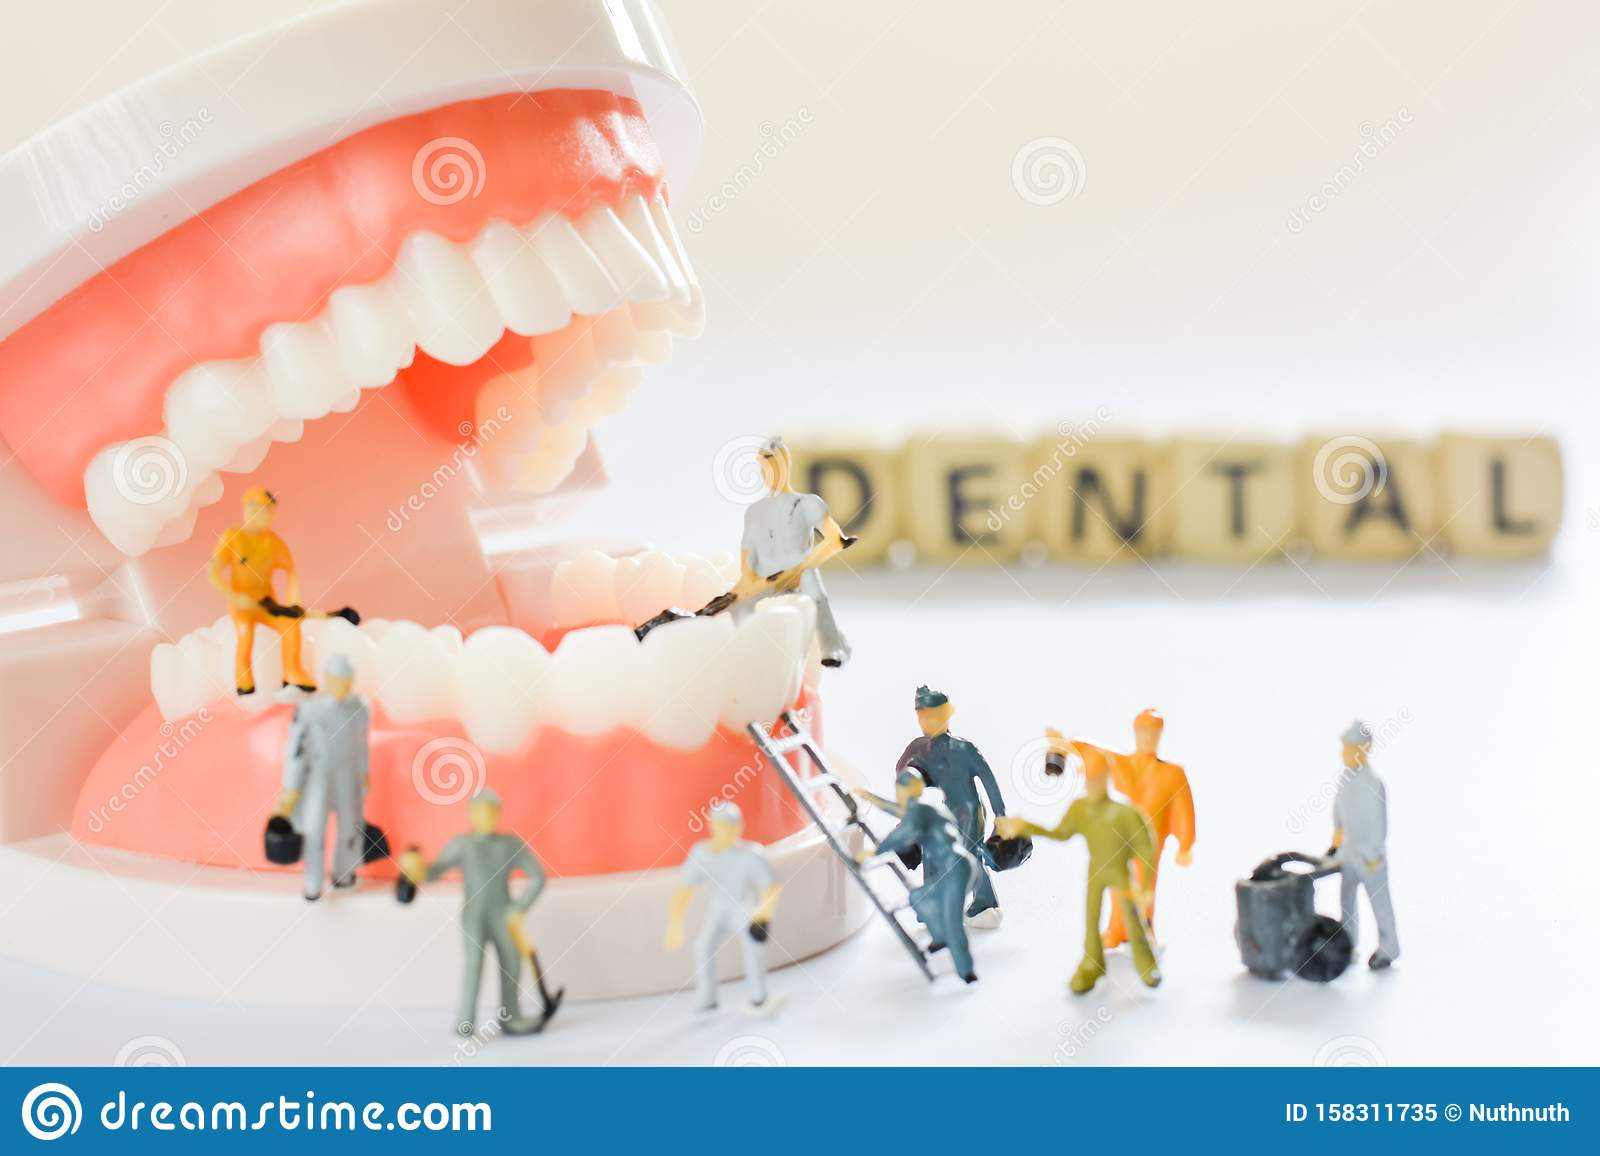 Miniature people, small model human figure clean model teeth with copy space. Medical and dental concept. Team work on dental care